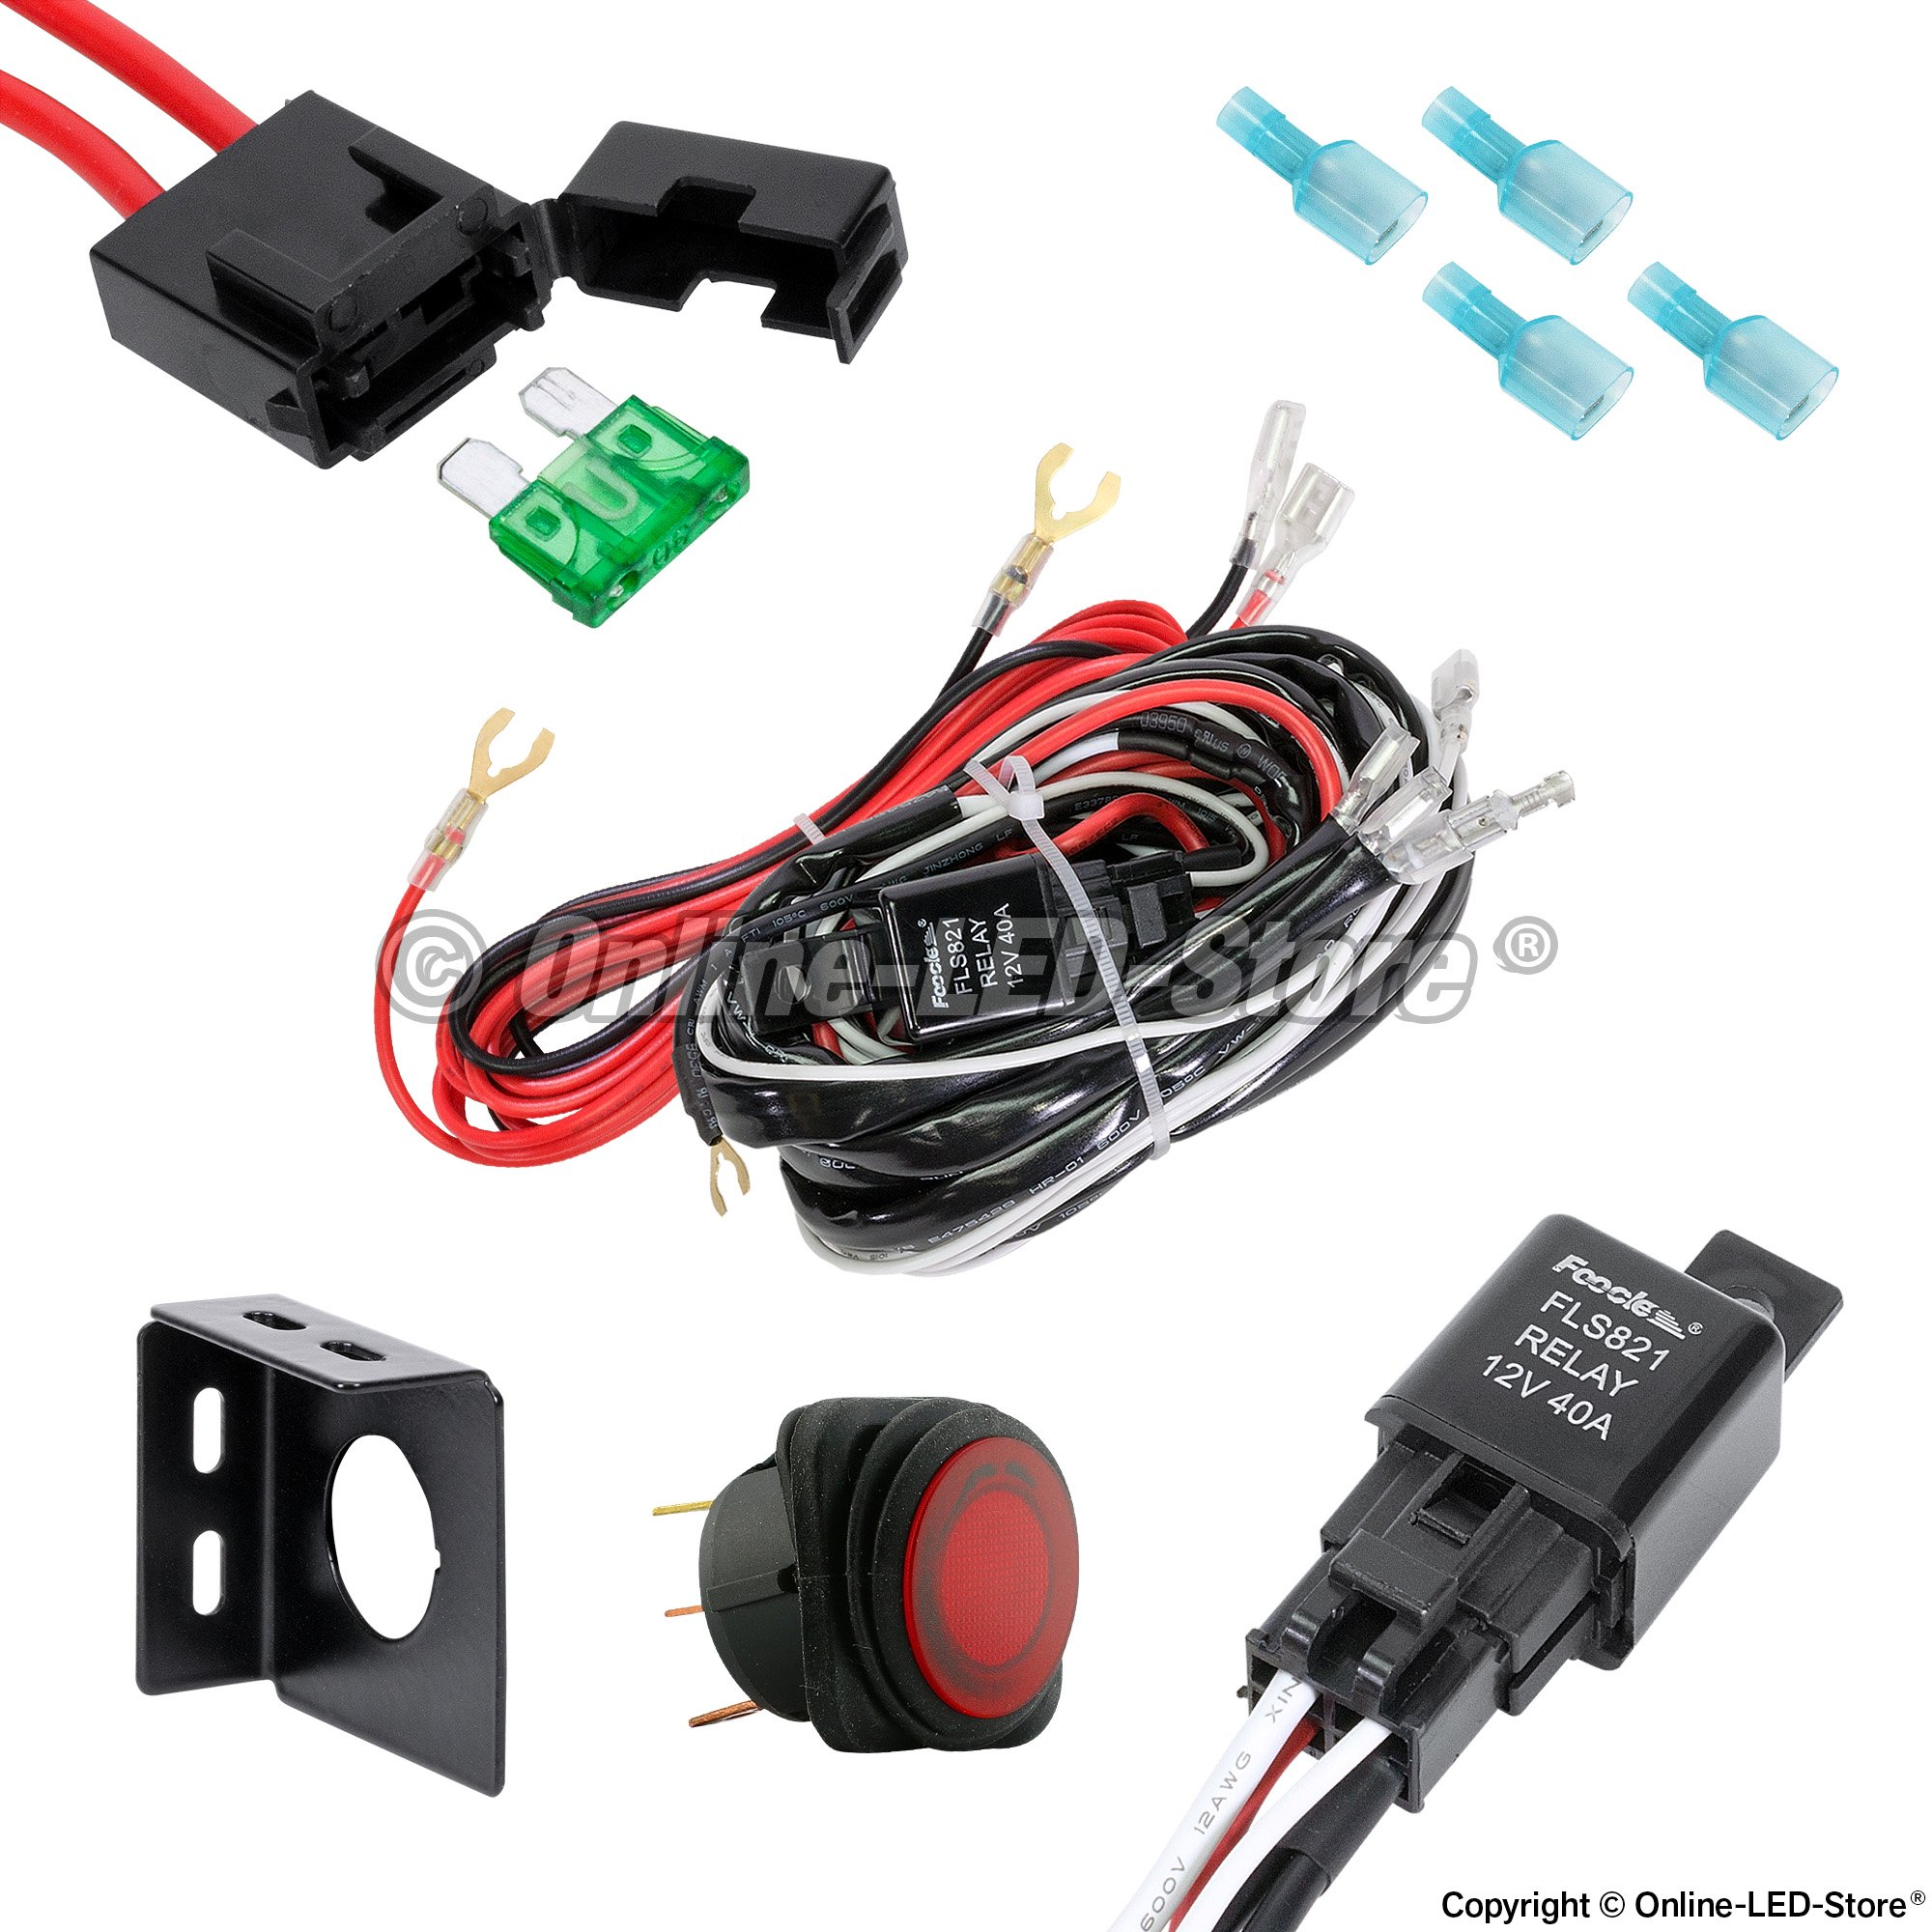 ford wiring harness kits off-road led light bar wiring harness | off-road light ... off road wiring harness kits